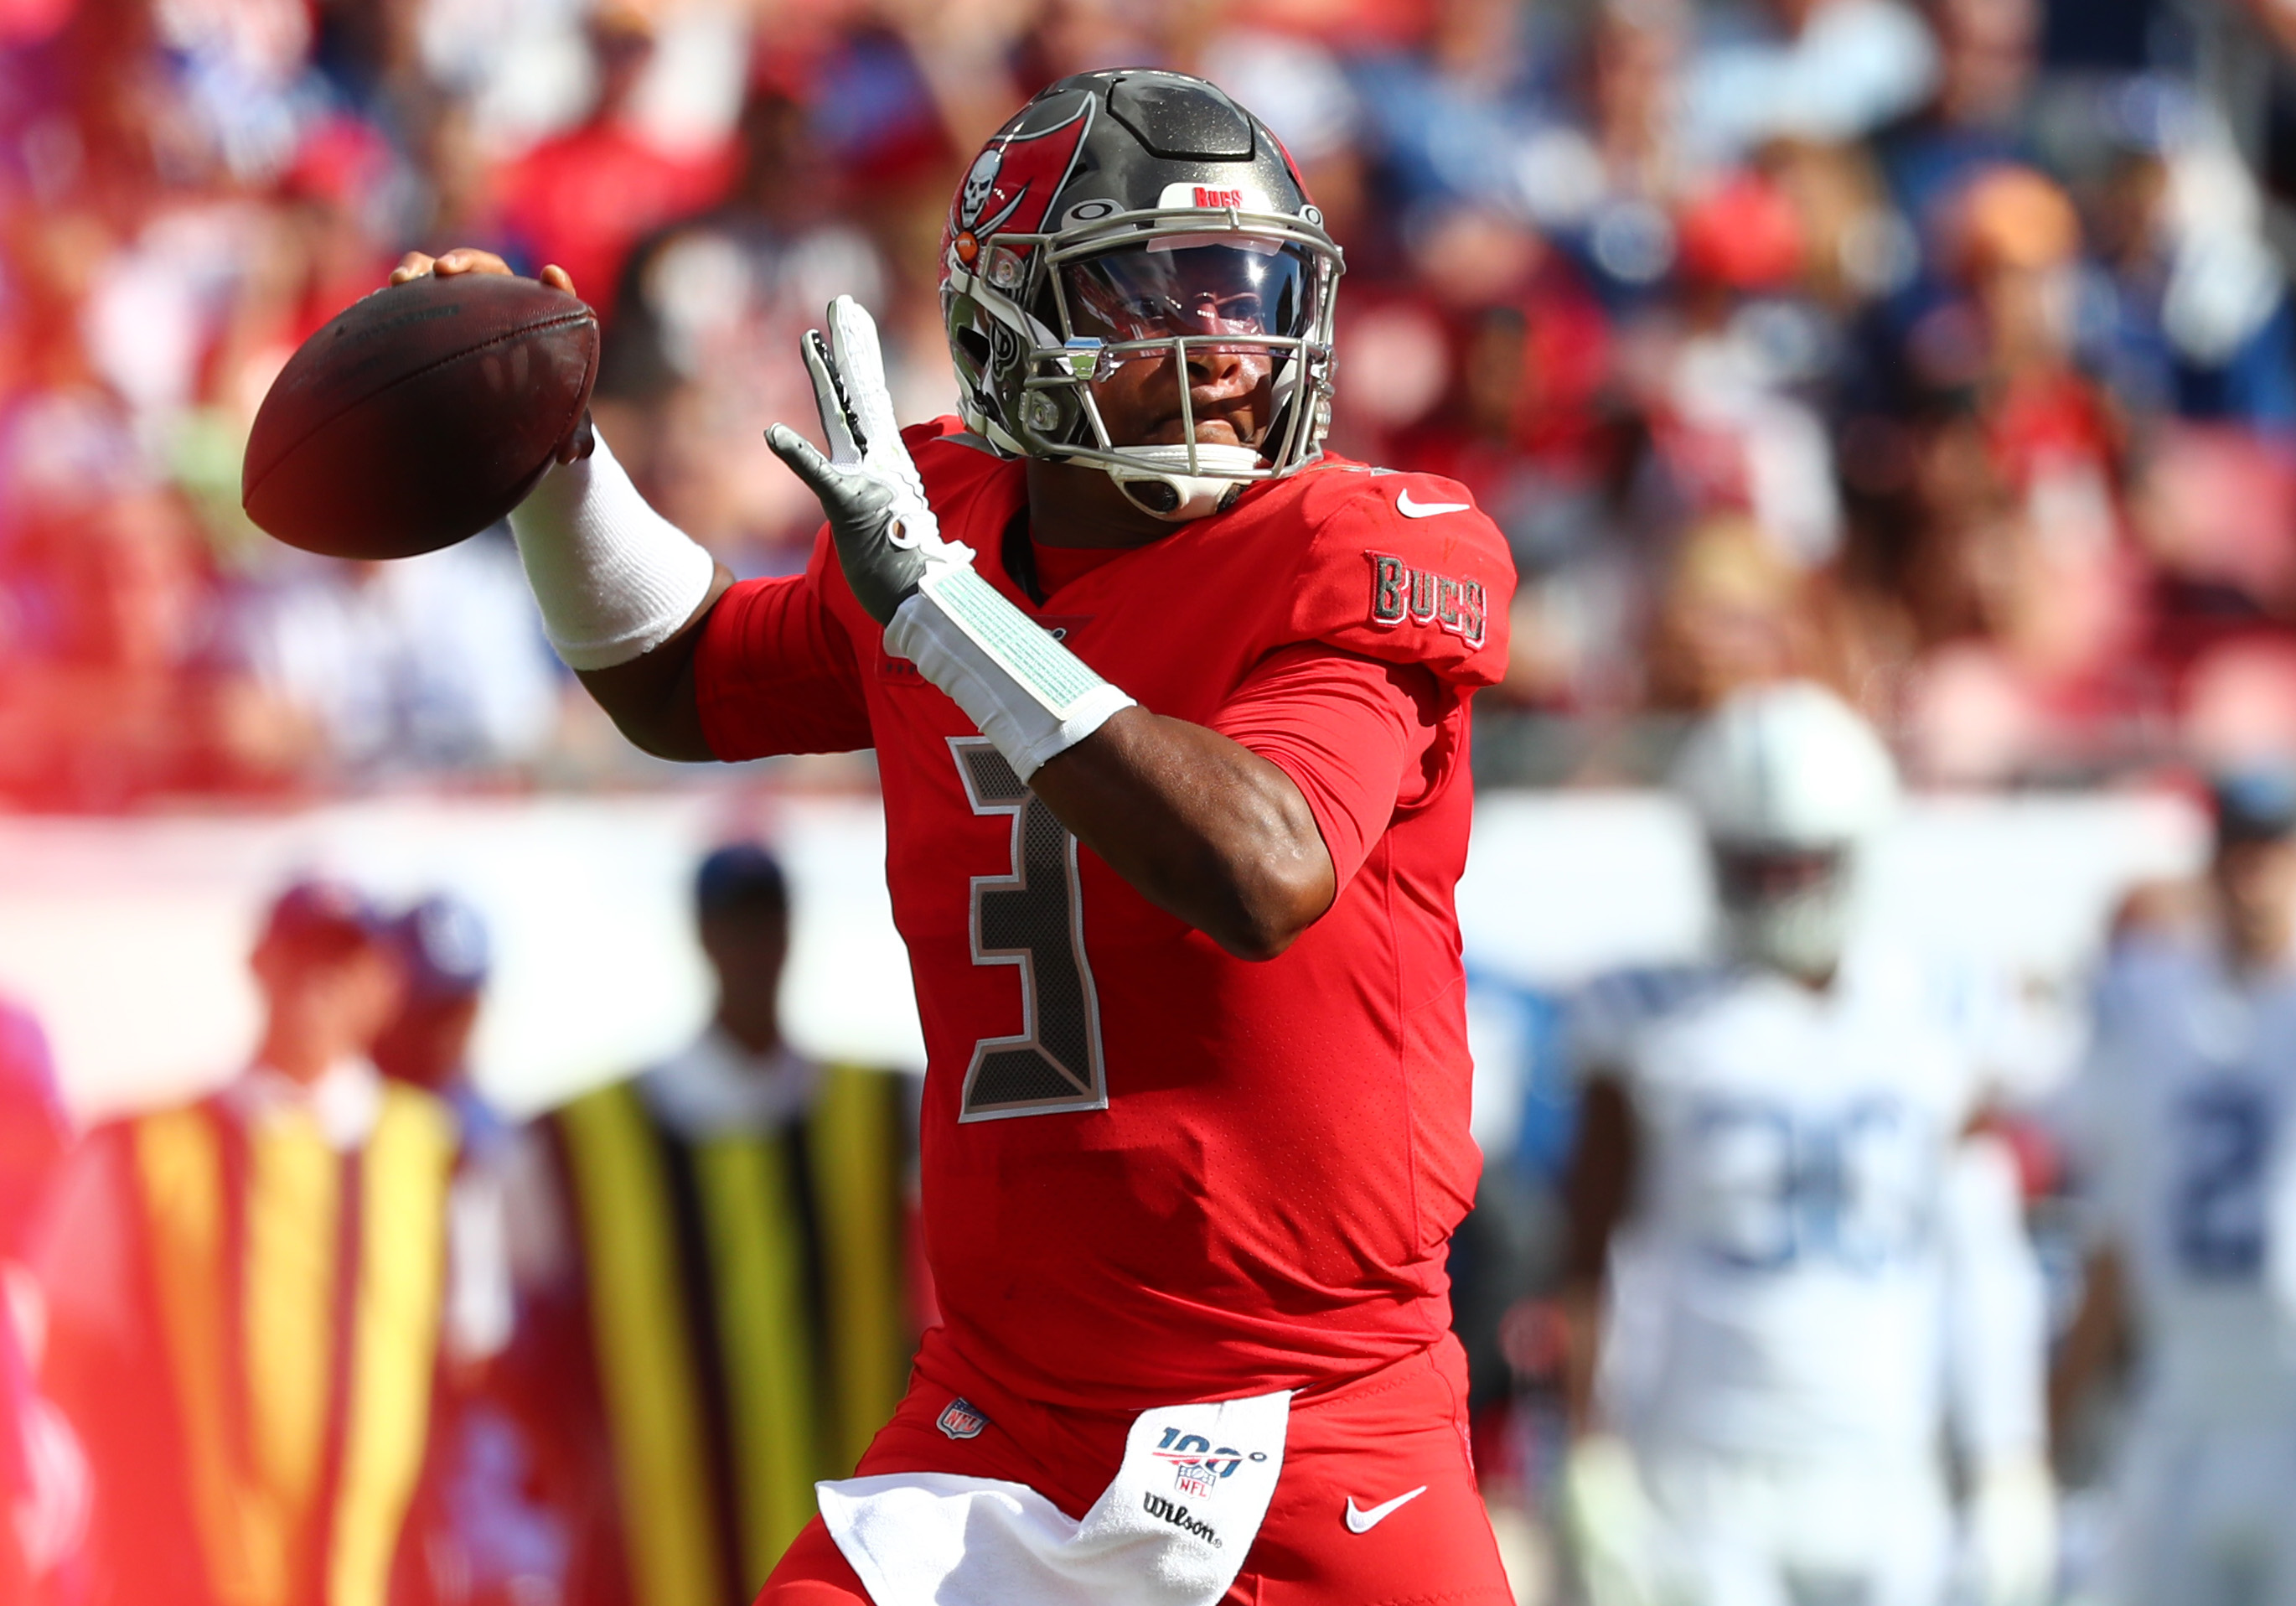 Tampa Bay Buccaneers quarterback Jameis Winston throws the ball against the Indianapolis Colts during the first half at Raymond James Stadium.